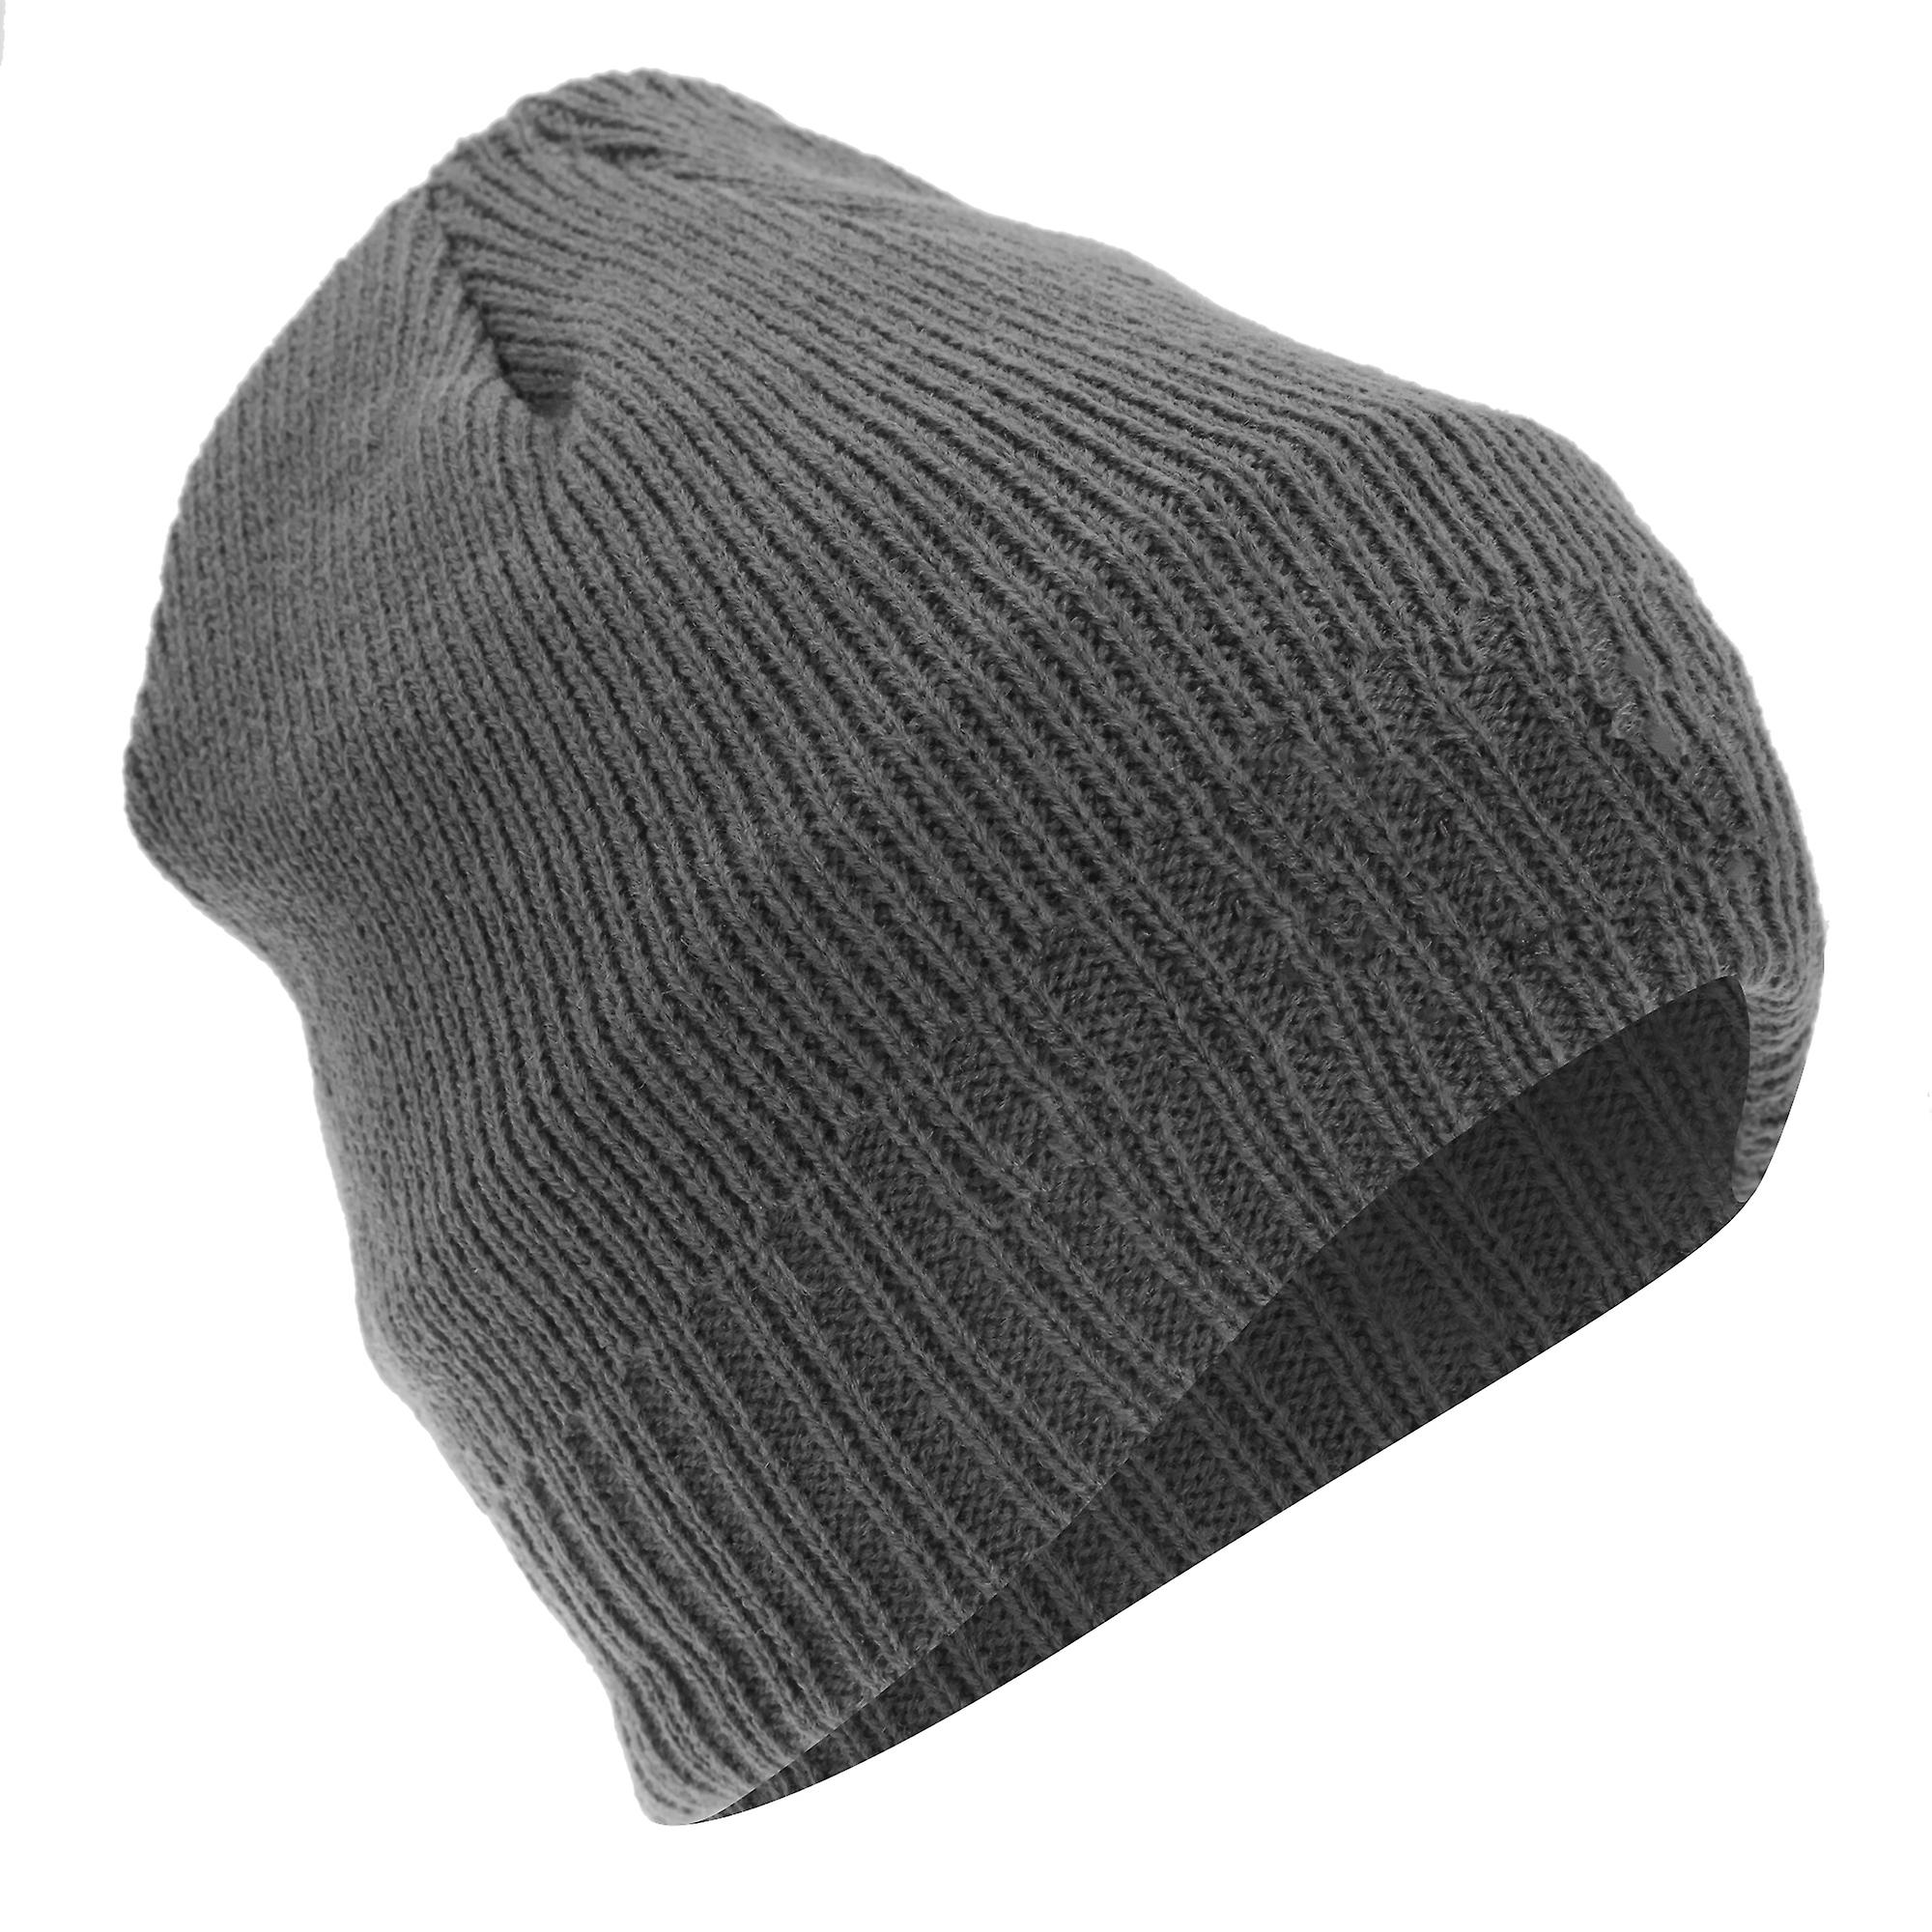 5bdc0eccaf4 FLOSO Mens Thinsulate Knitted Thermal Beanie Winter Ski Hat With Inner  Lining (3M 40g